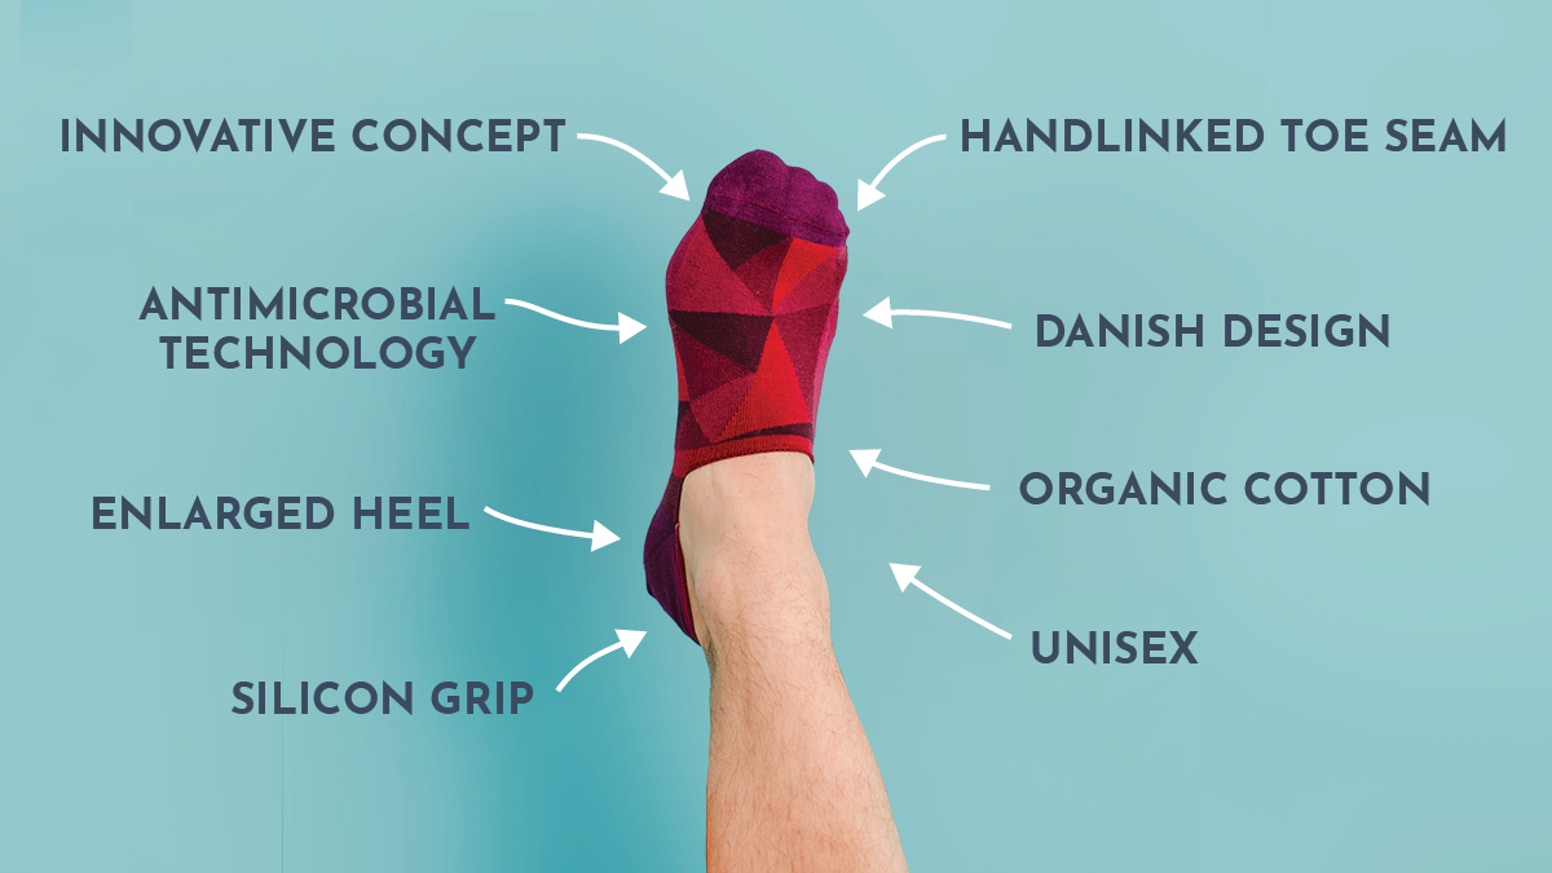 The best organic, sustainable, innovative, top quality, designer socks return as no-shows. No pairing. No wasting. No showing.